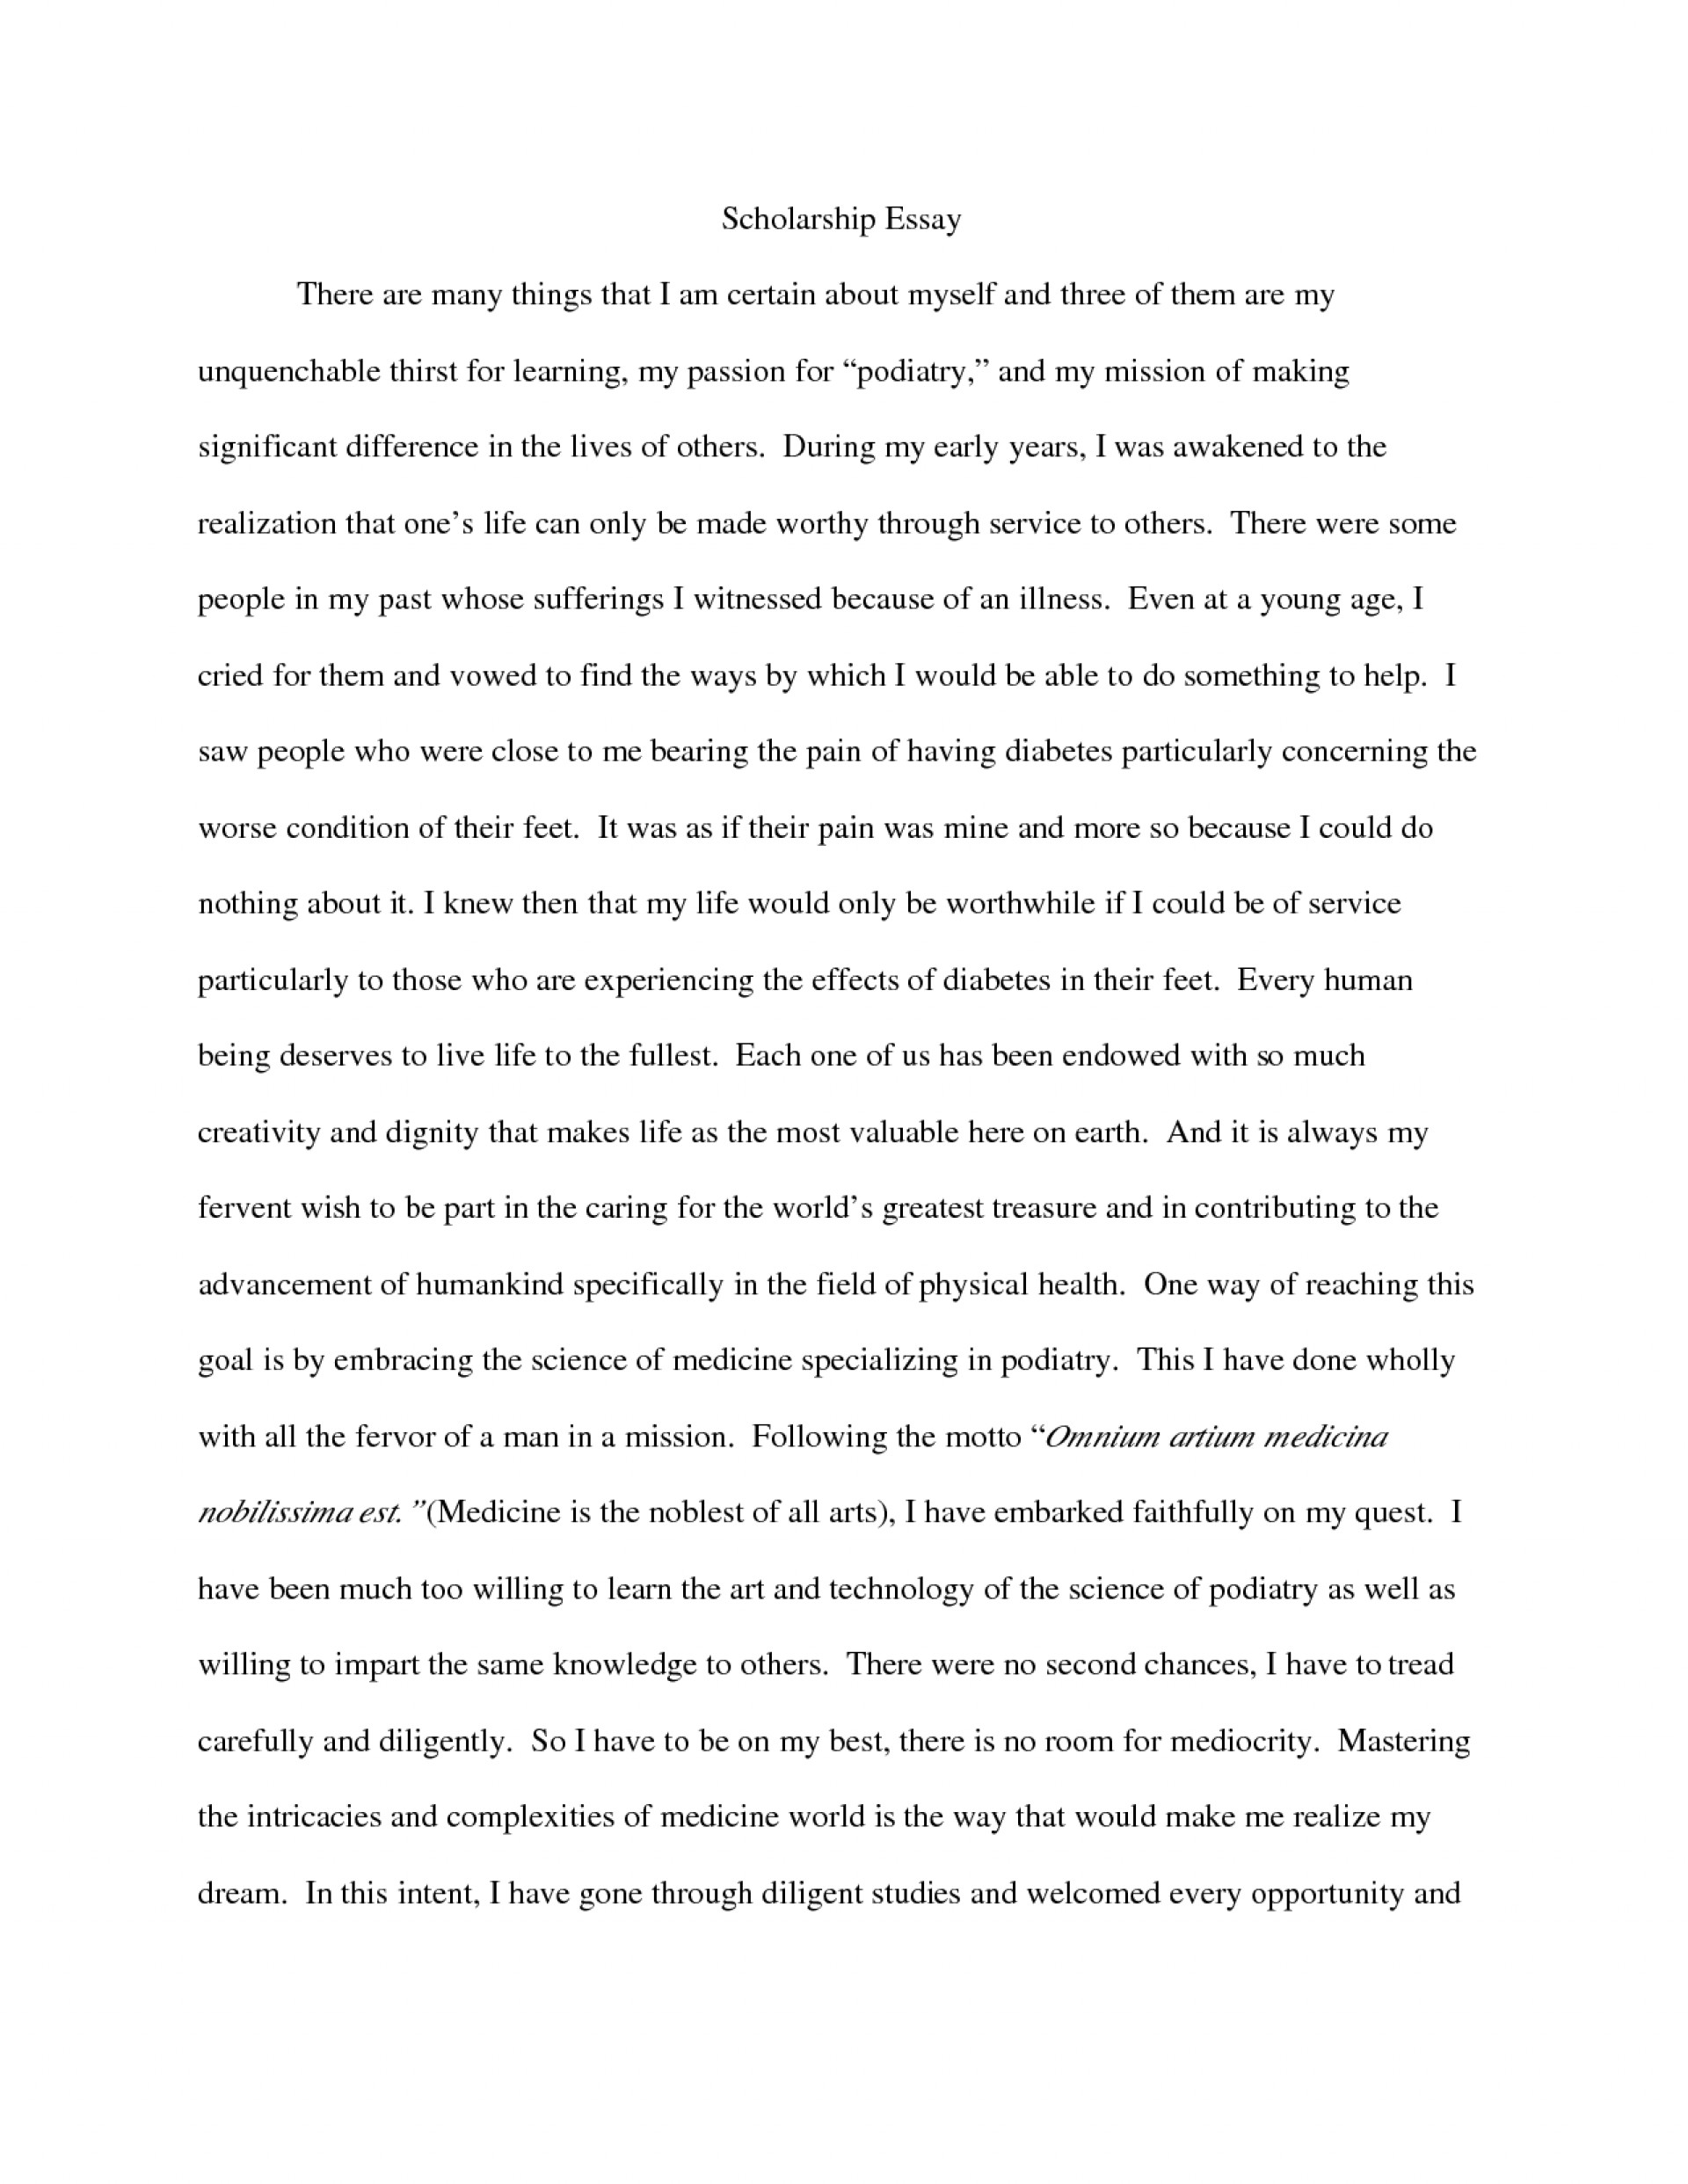 012 Essay Example Scholarships With Essays Examples Of Singular Without Writing For High School Juniors Class 2020 No 2019 1920